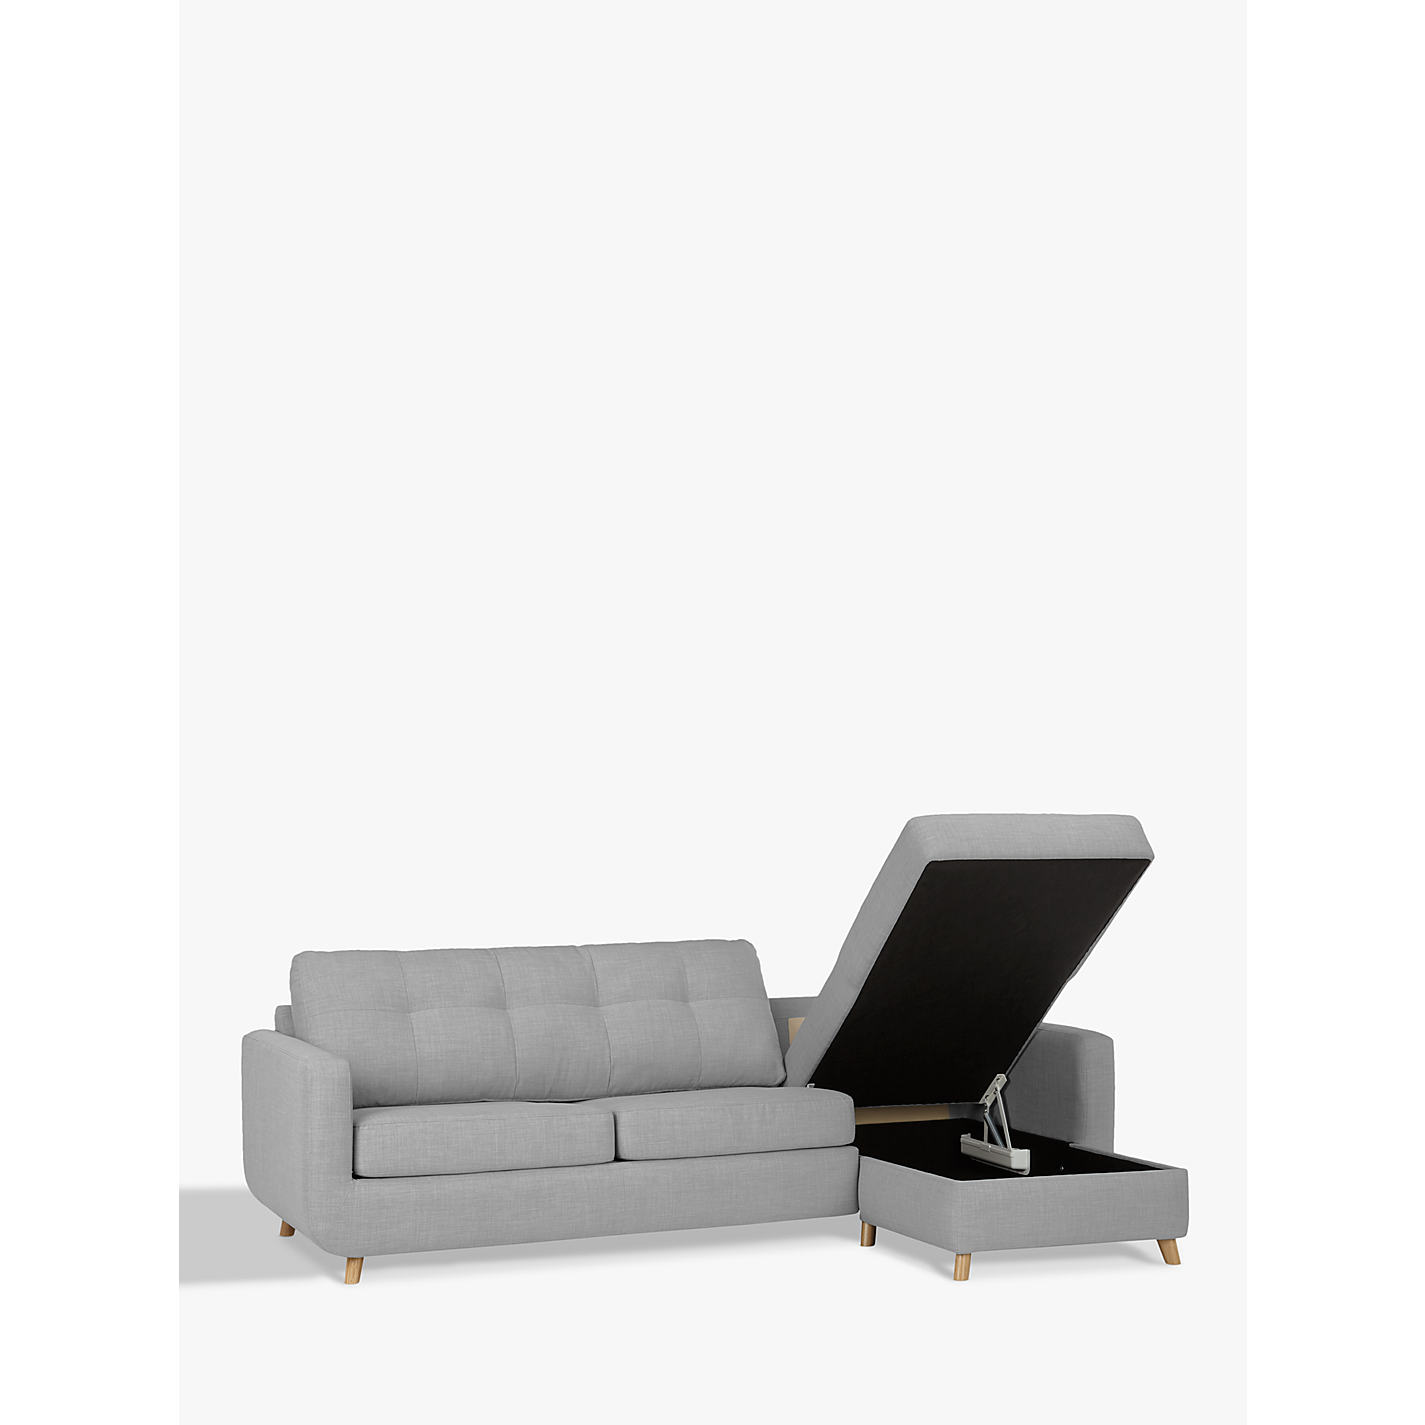 Buy John Lewis Barbican RHF Chaise Sofa Bed with Storage Pocket